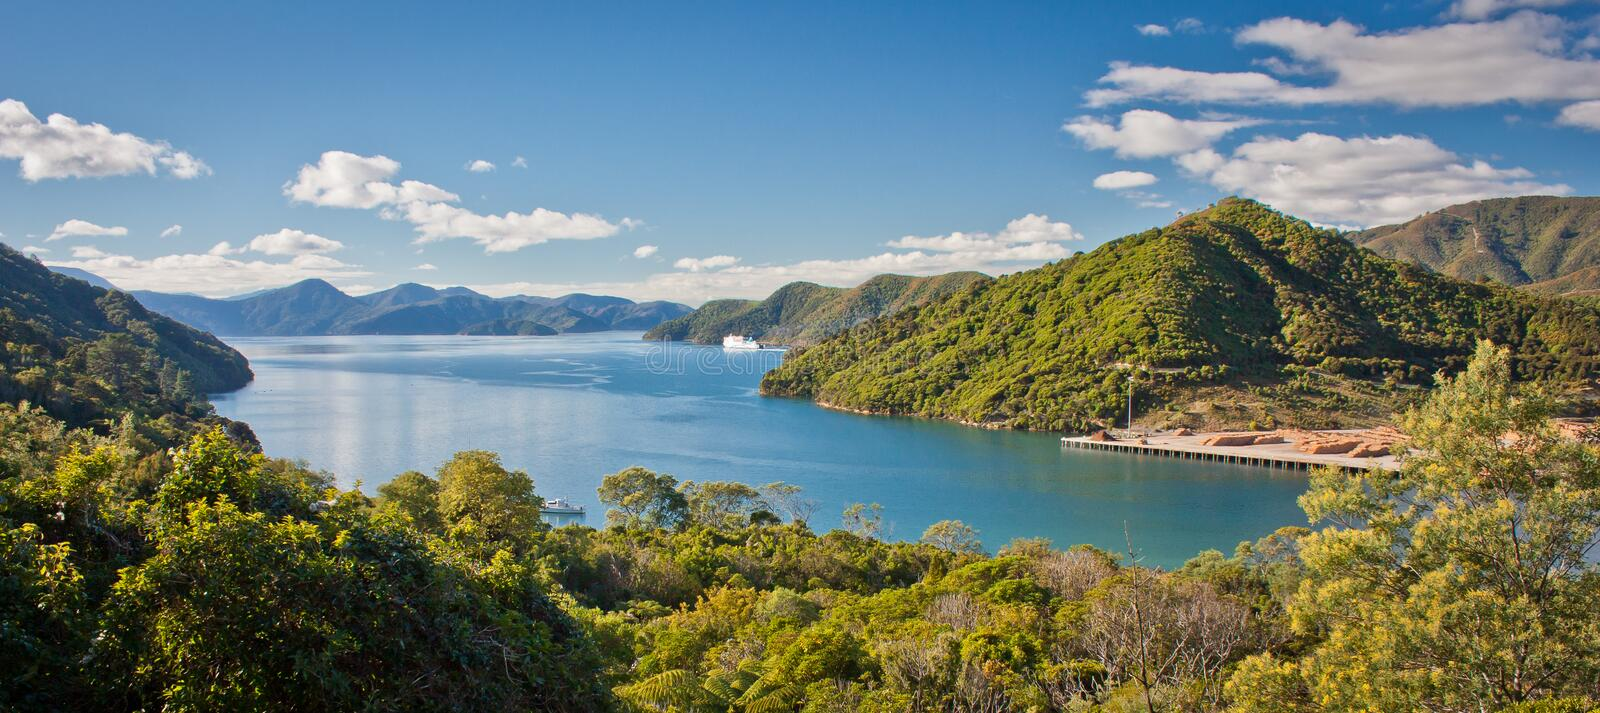 Panoramatic view of Cook Inlet from Queen Charlotte Drive near Picton, Marlborough departament, New Zealand stock image